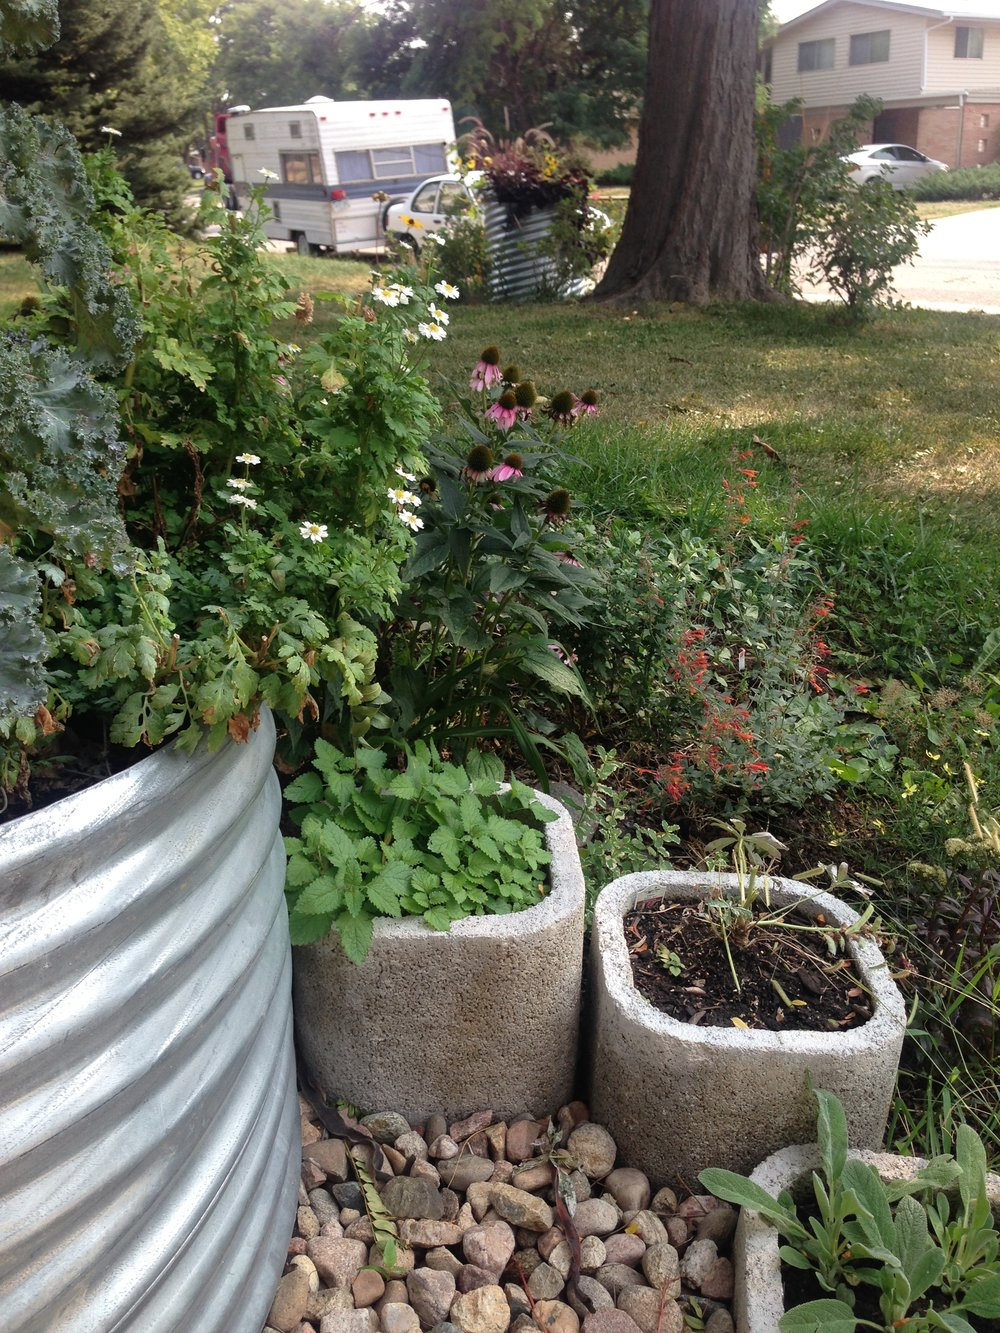 Kale, feverfew, echinacea, mints, lemon balm melissa and white lupine just getting started.